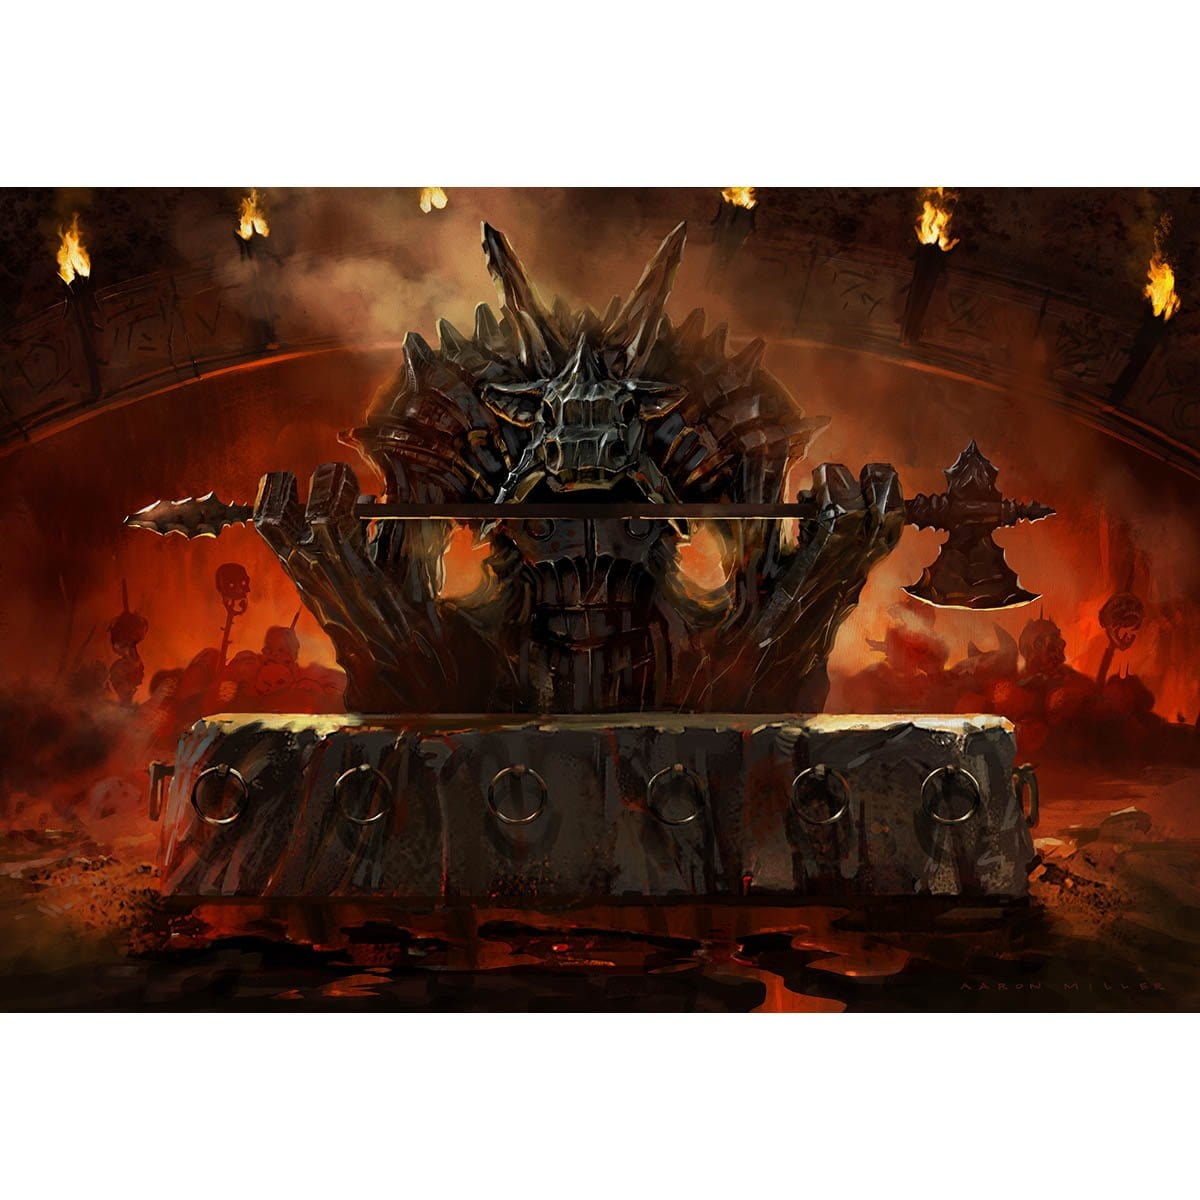 Altar of Mogis Print - Print - Original Magic Art - Accessories for Magic the Gathering and other card games